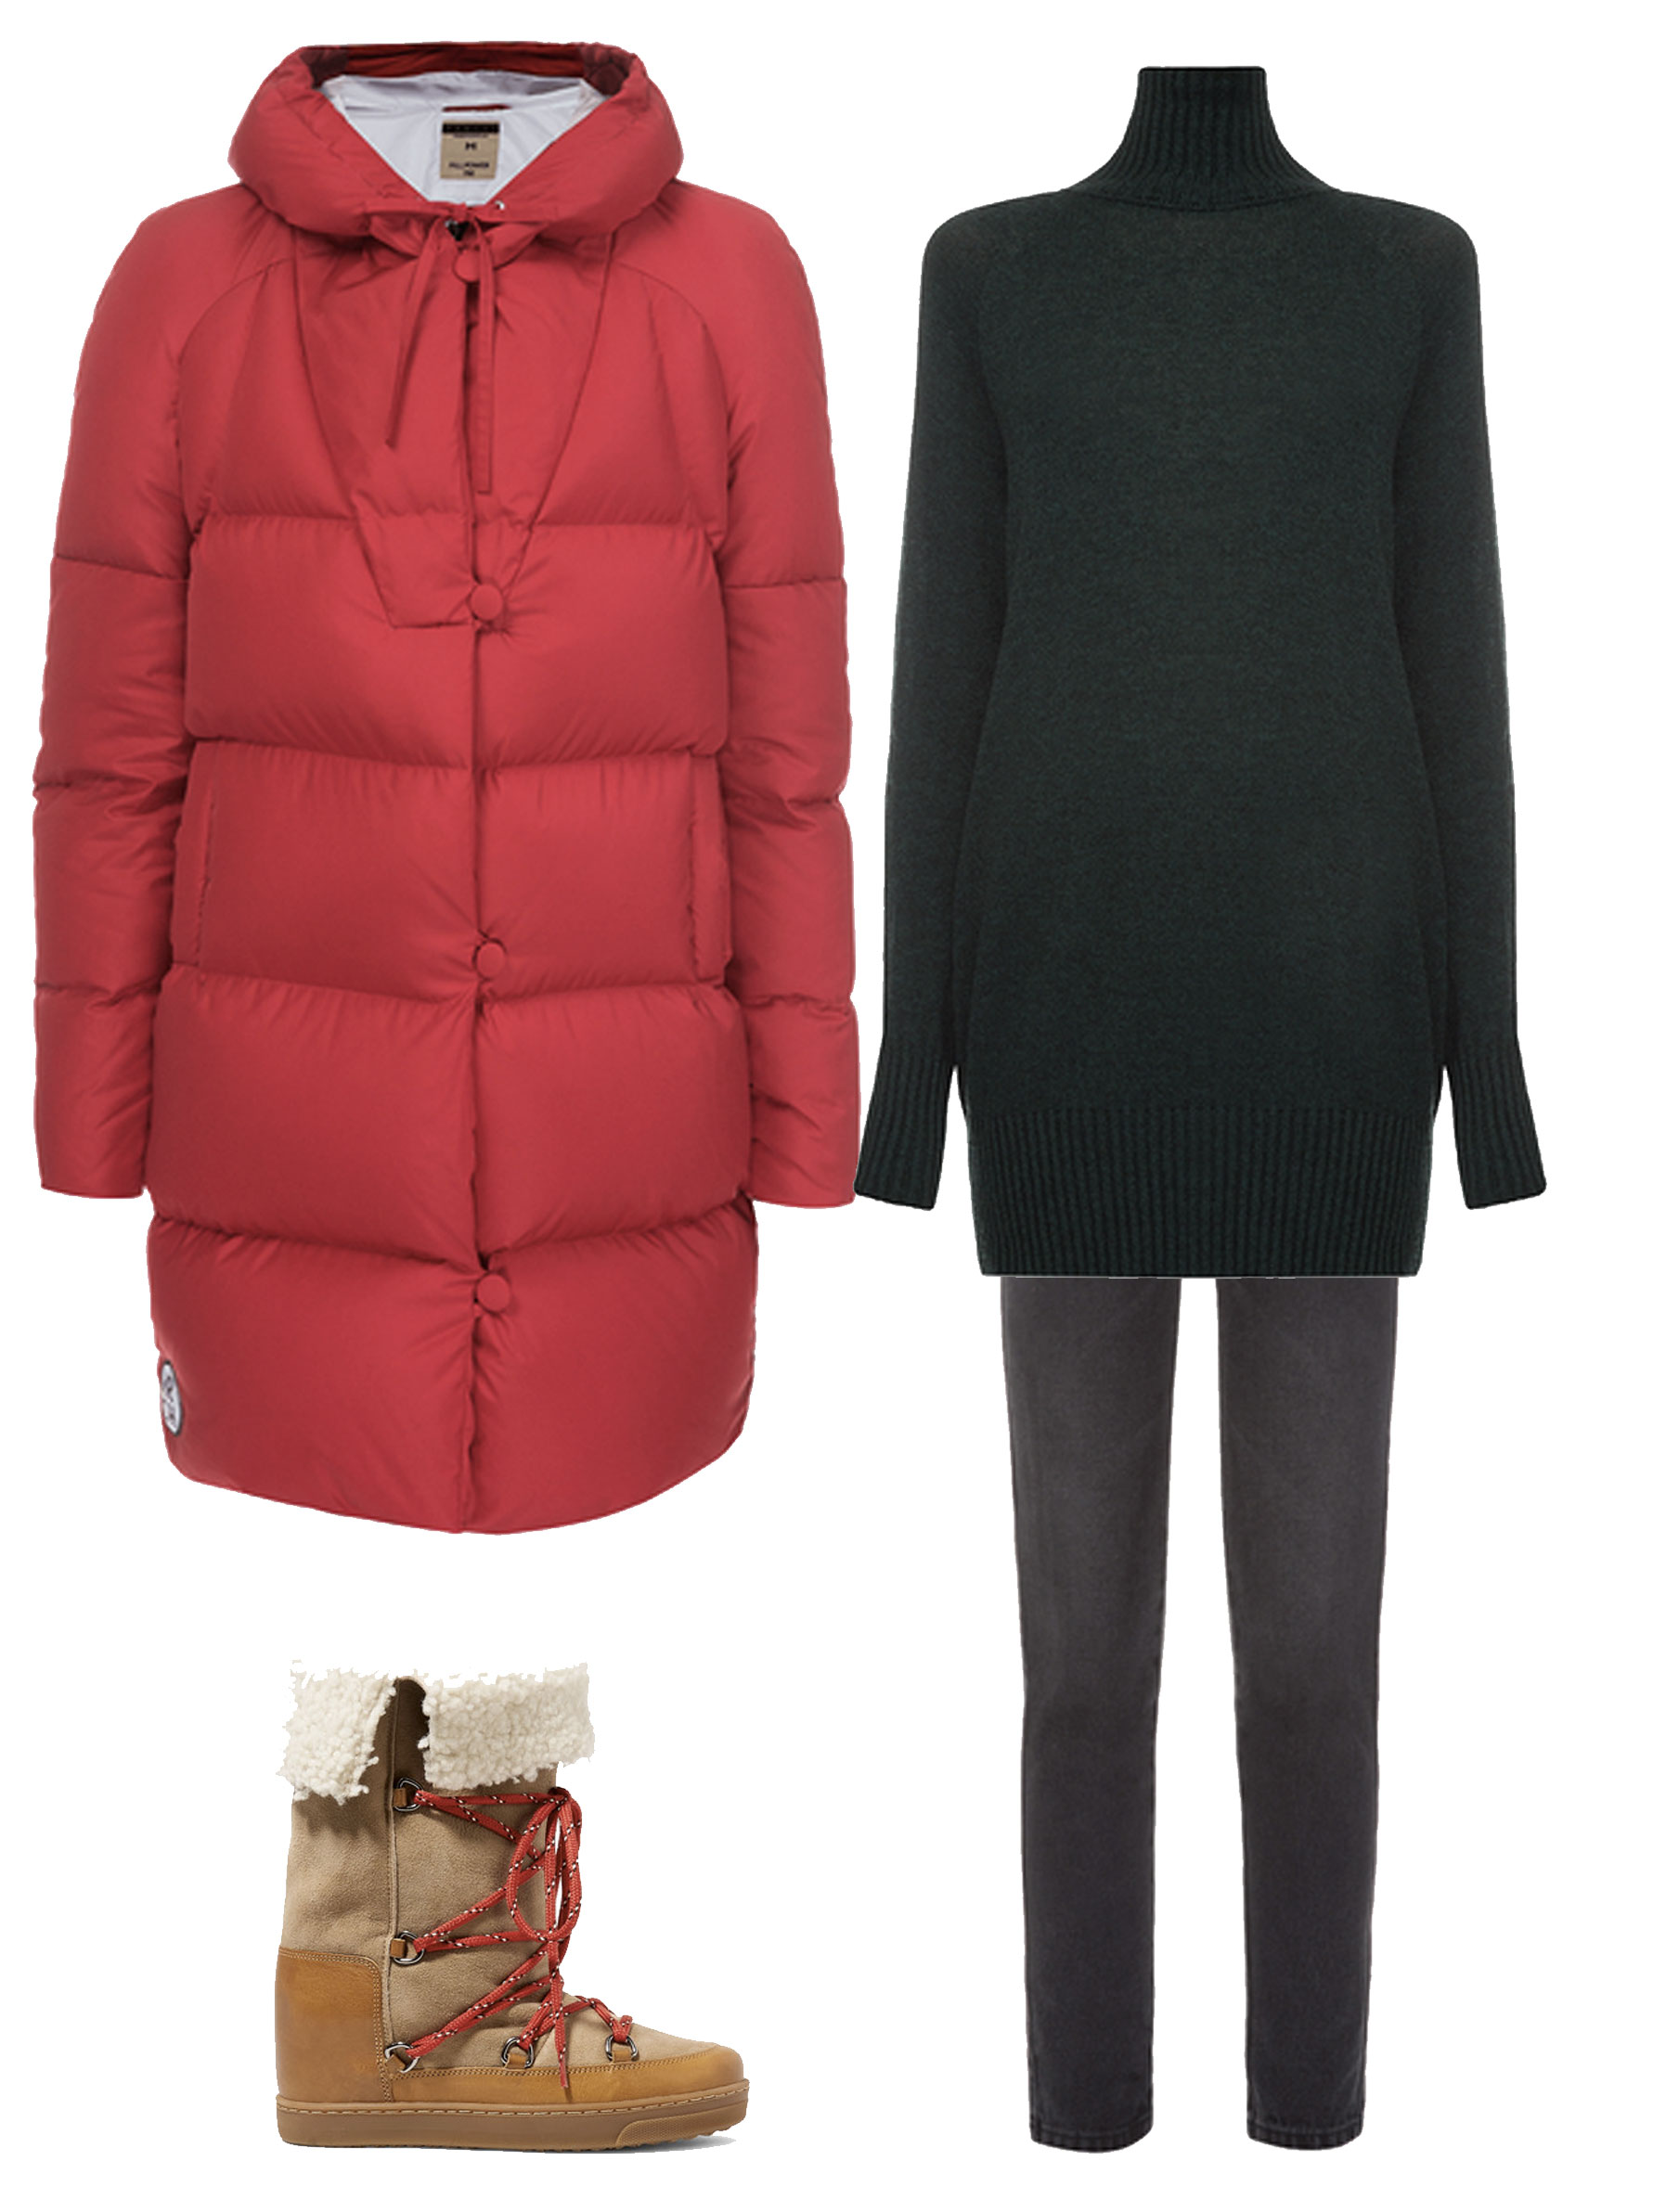 Three outfits for cold weather